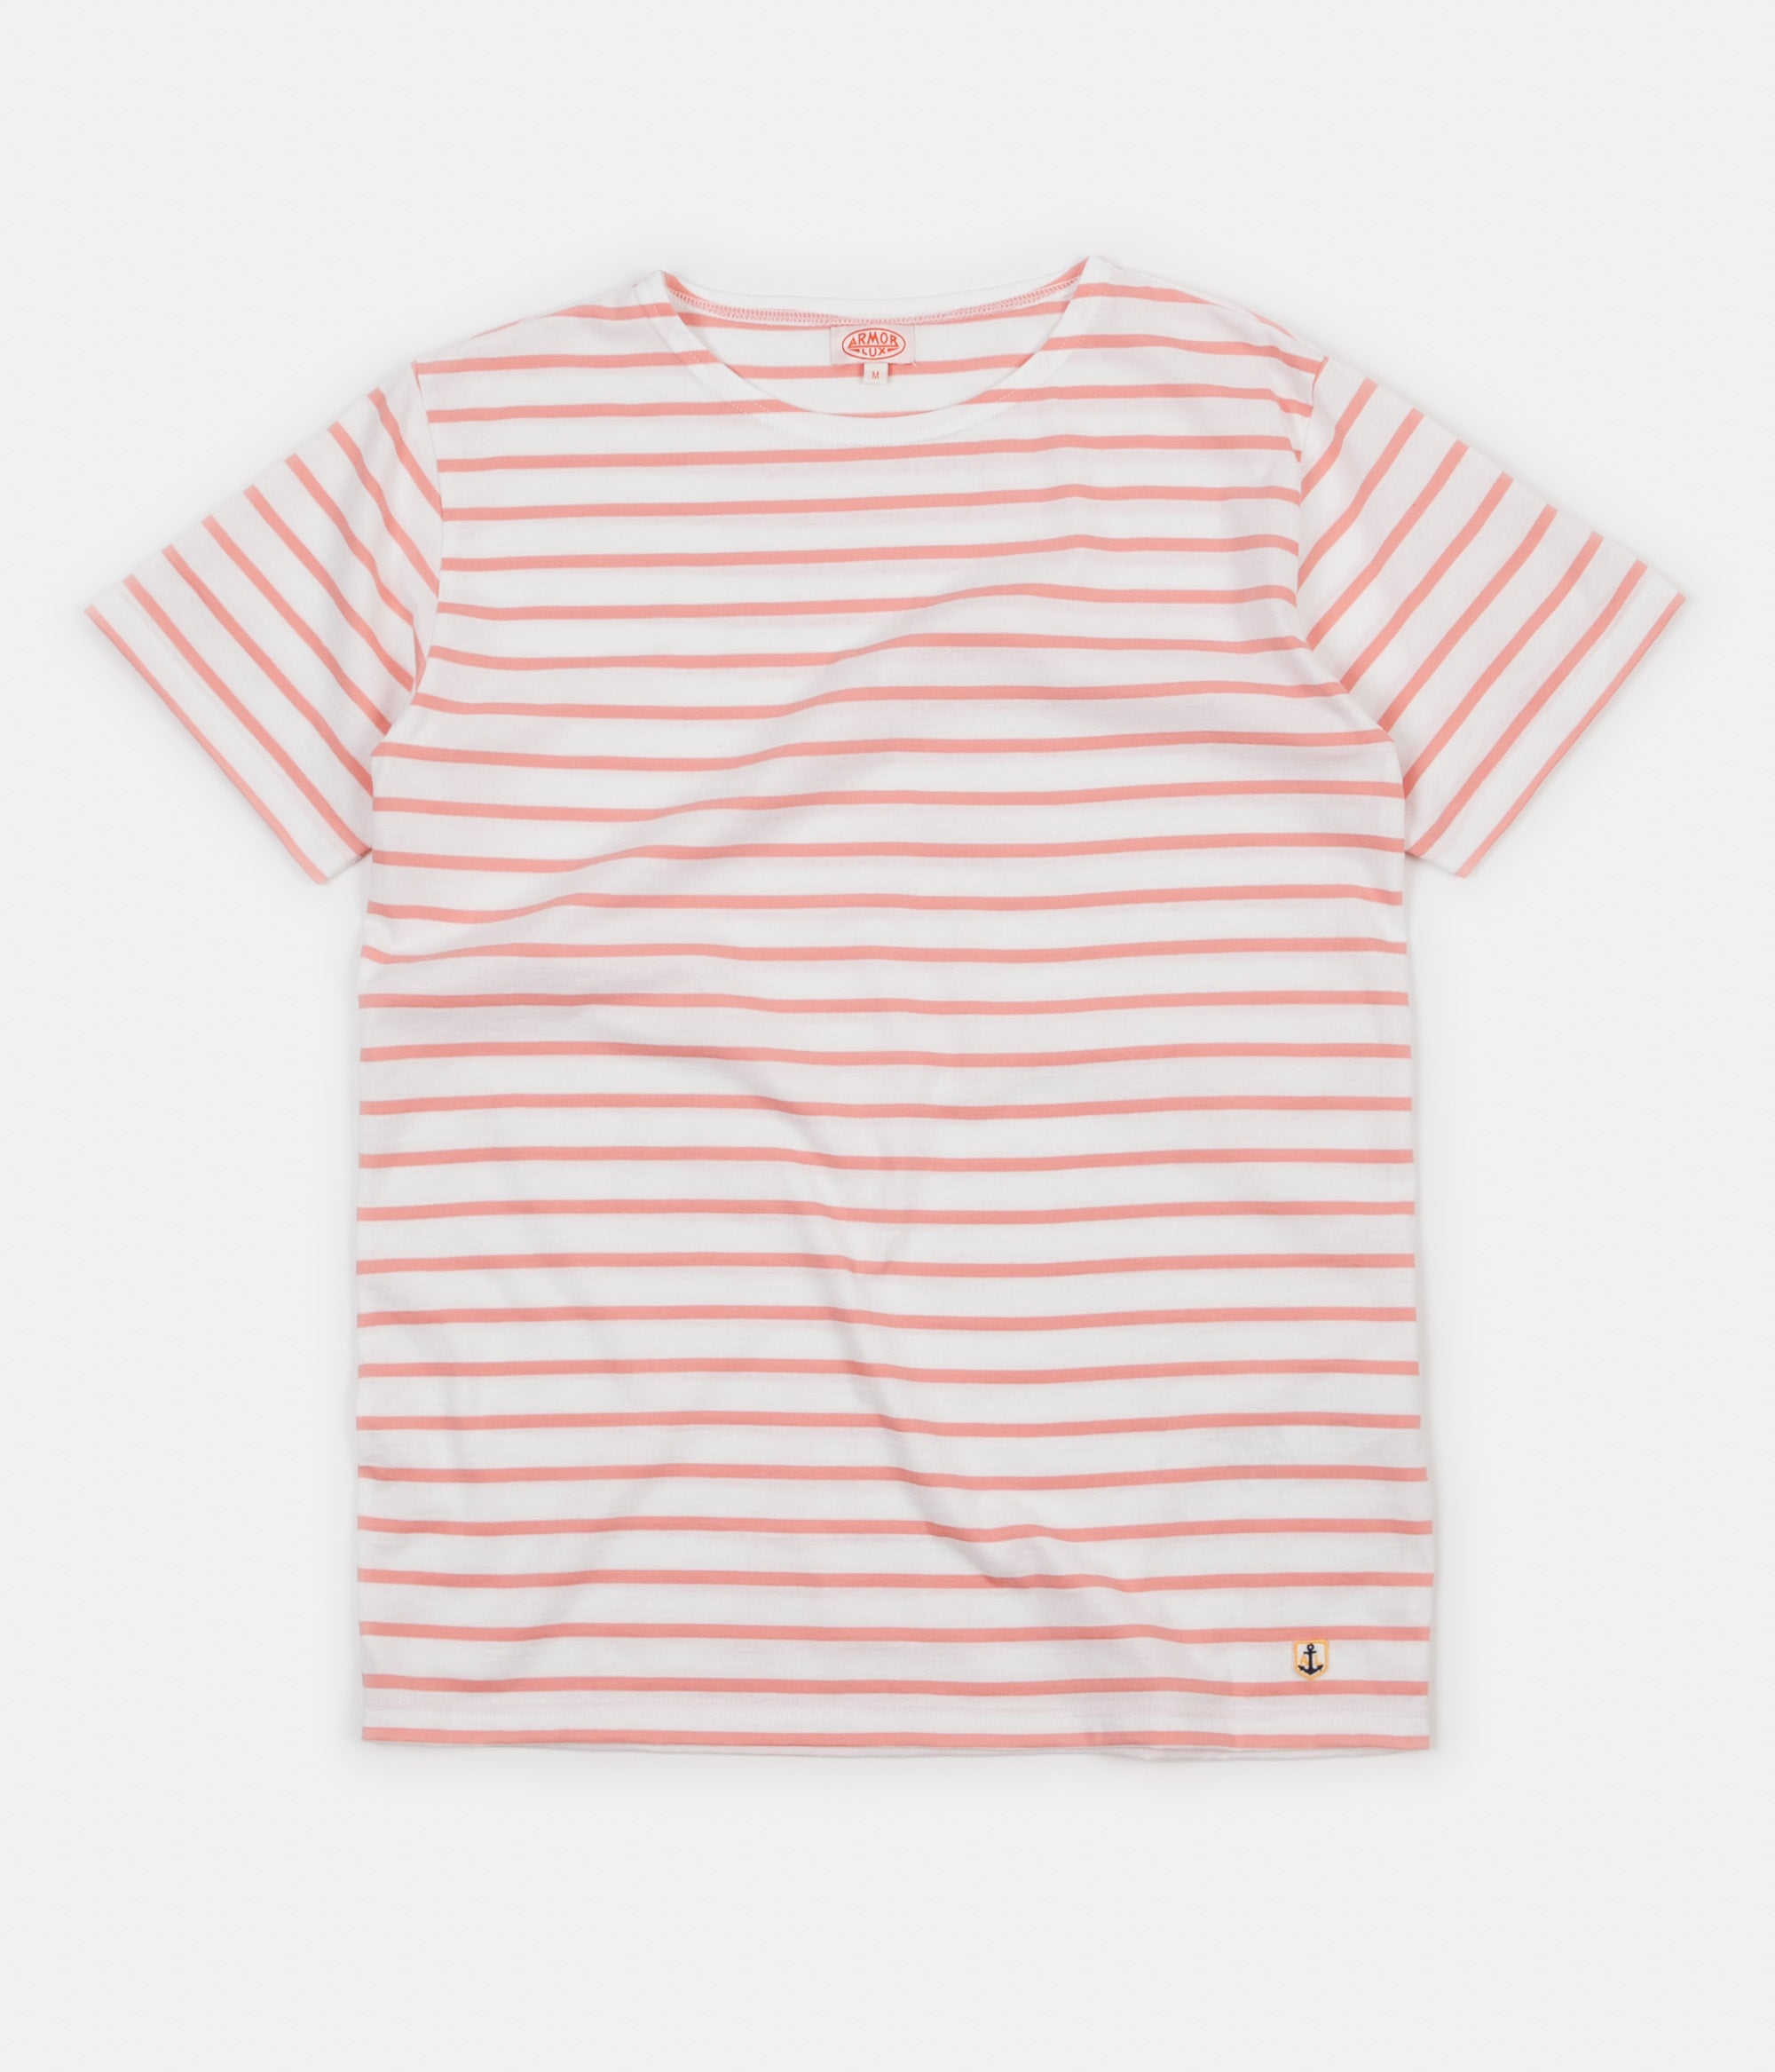 Armor Lux Breton Sailor Striped T-Shirt - Milk / Power